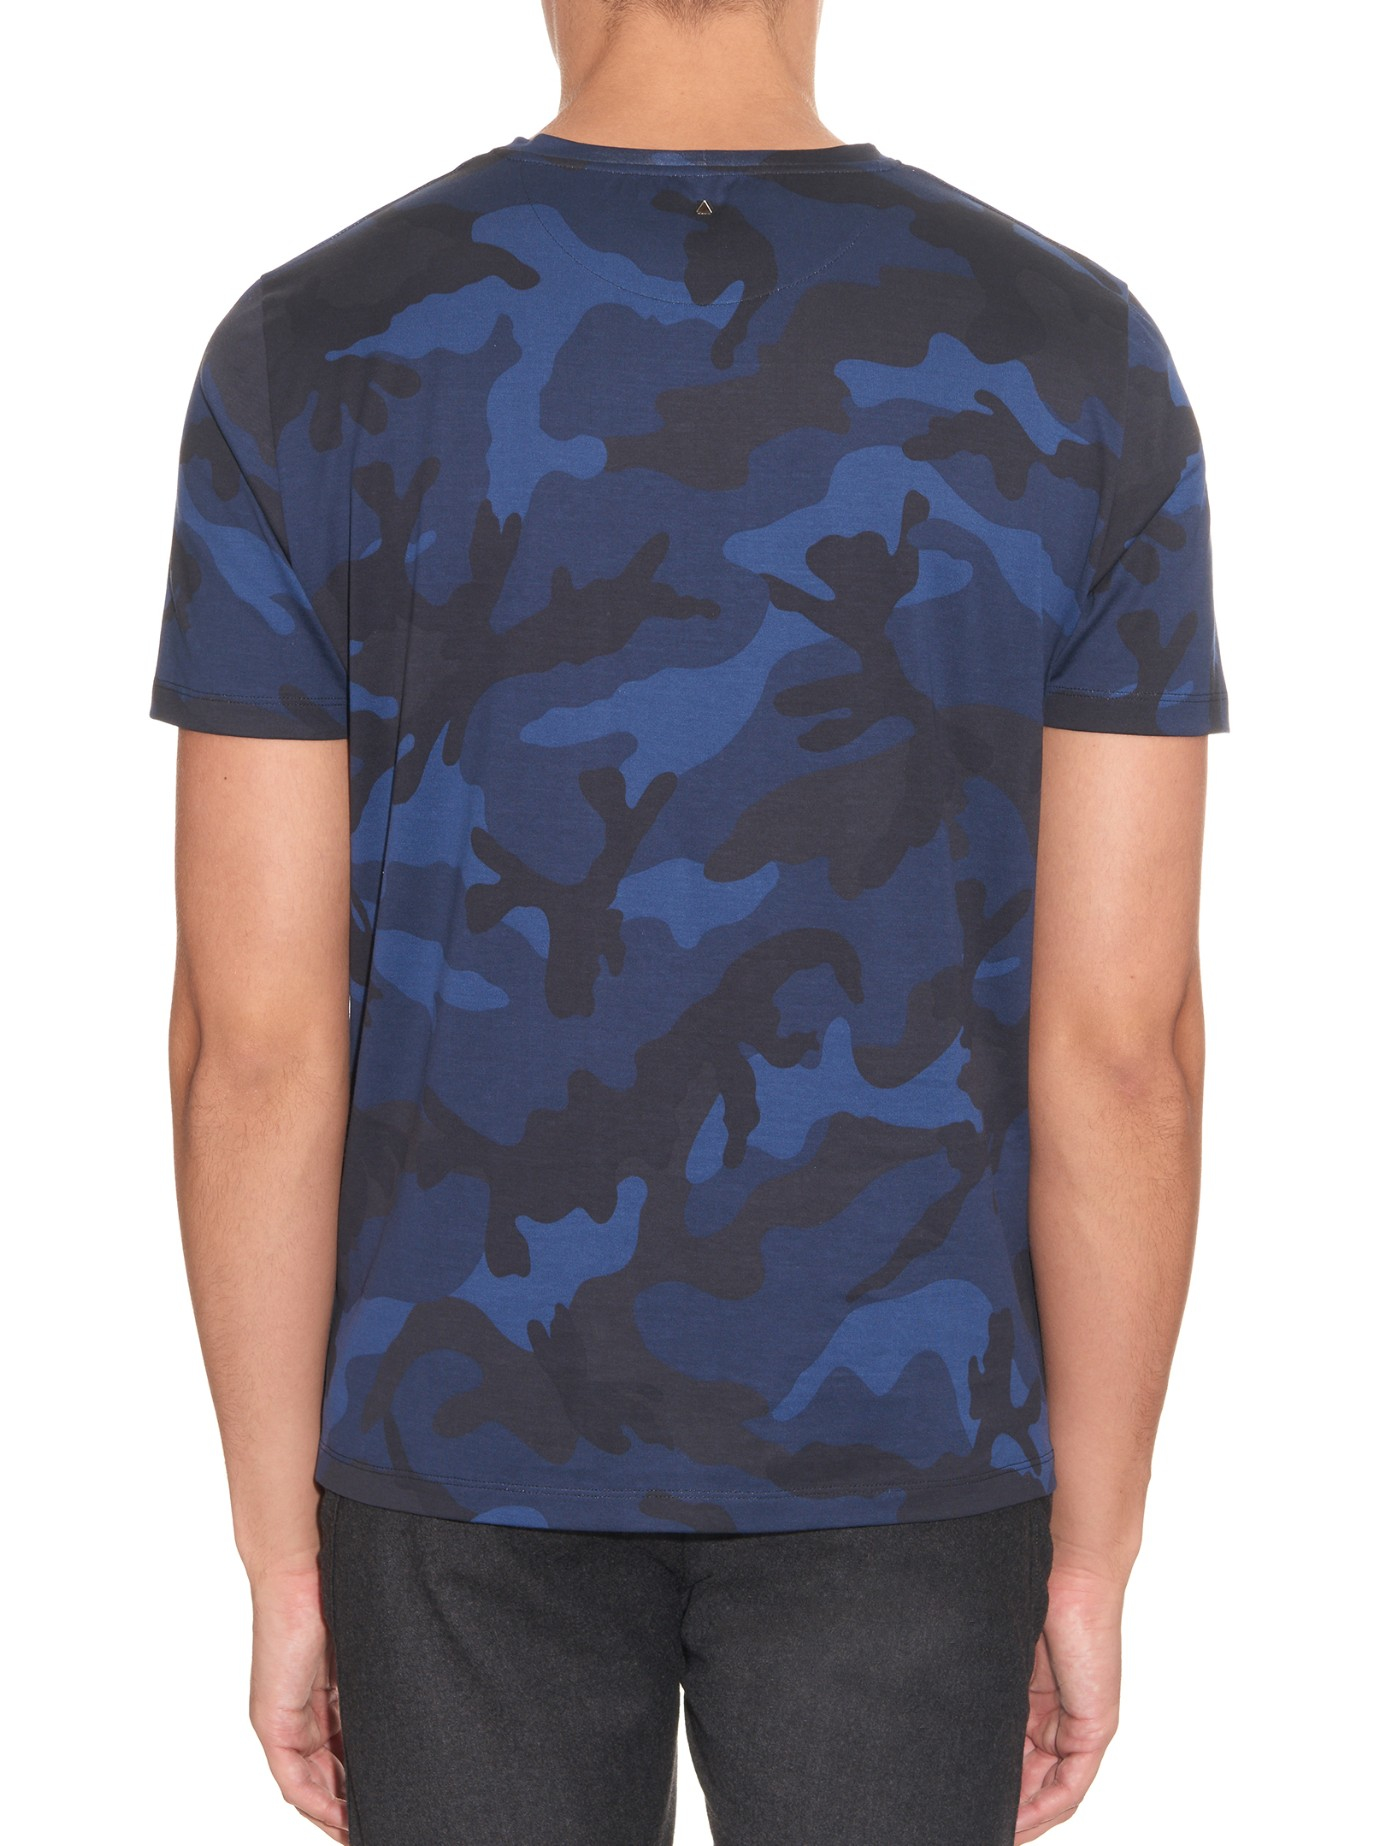 Lyst valentino camouflage print cotton jersey t shirt in for Camouflage t shirt printing